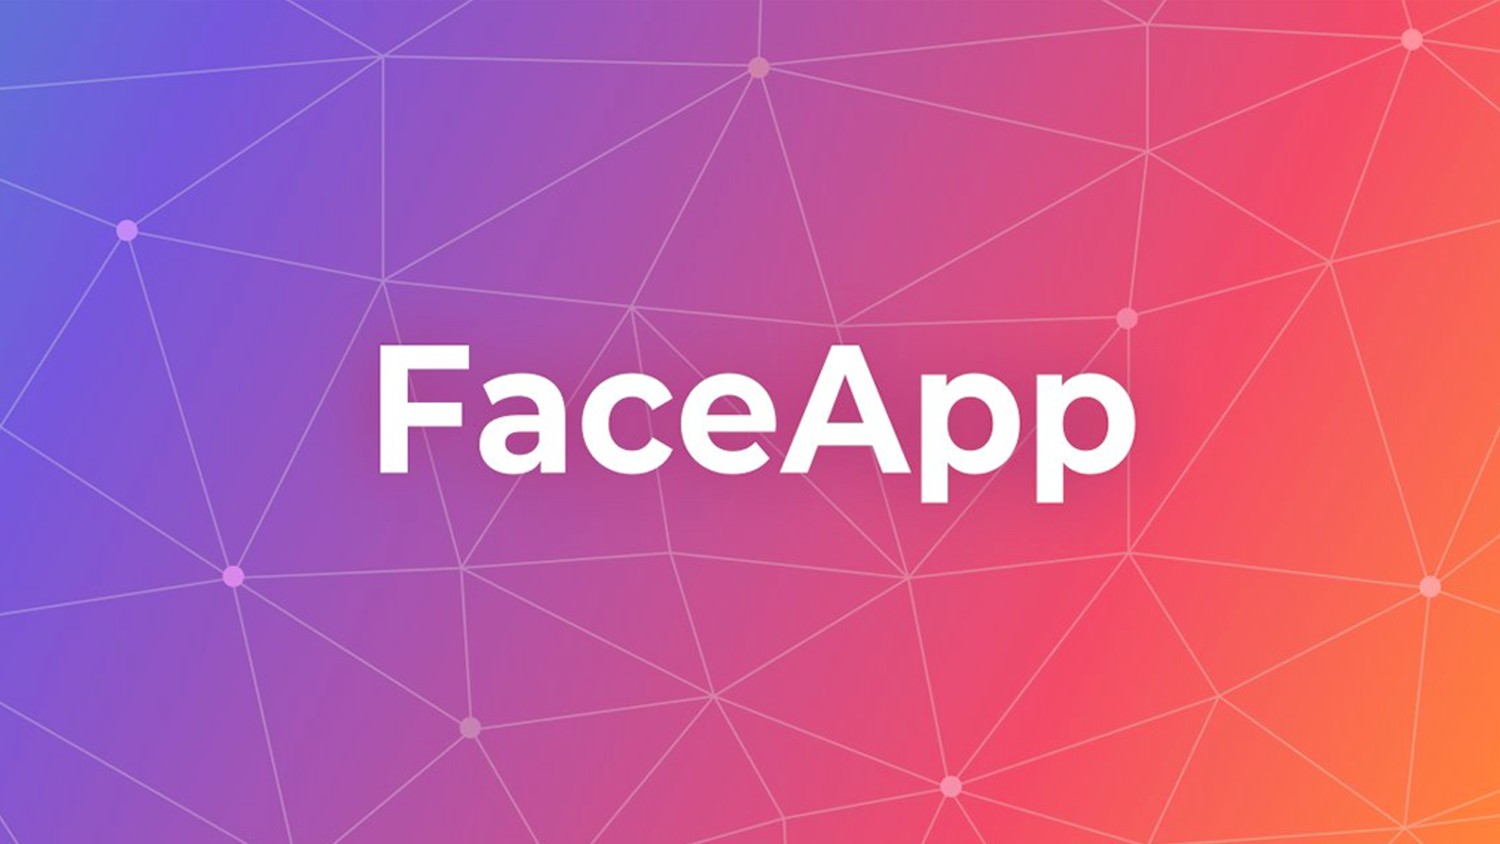 This is What Going Viral Looks Like - The Numbers Behind FaceApp